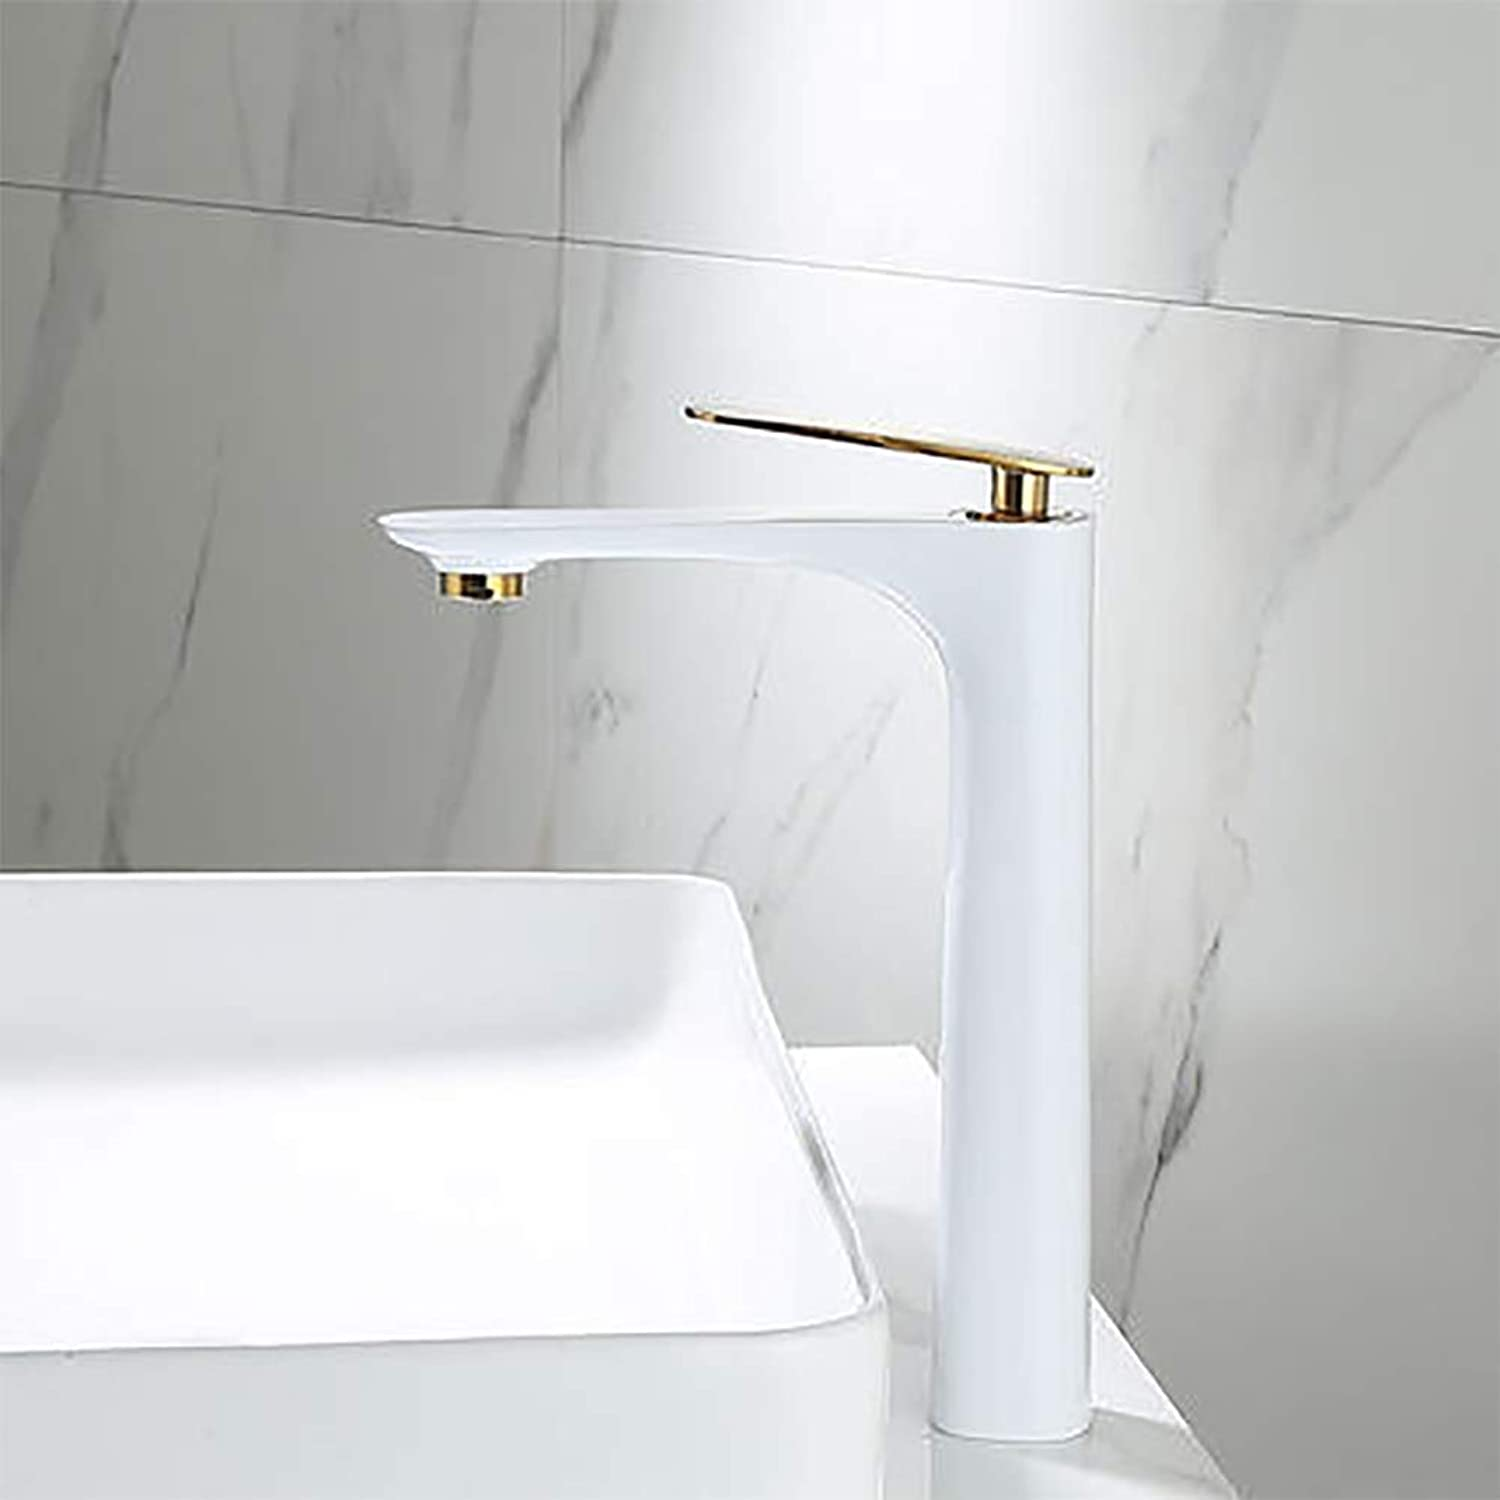 LUTAP Faucet Nordic Bathroom Copper Black Matte Hot and Cold Water Mixing High Above Counter Basin Wash Basin Ceramic Valve Spool Faucet,whitegold,290mm